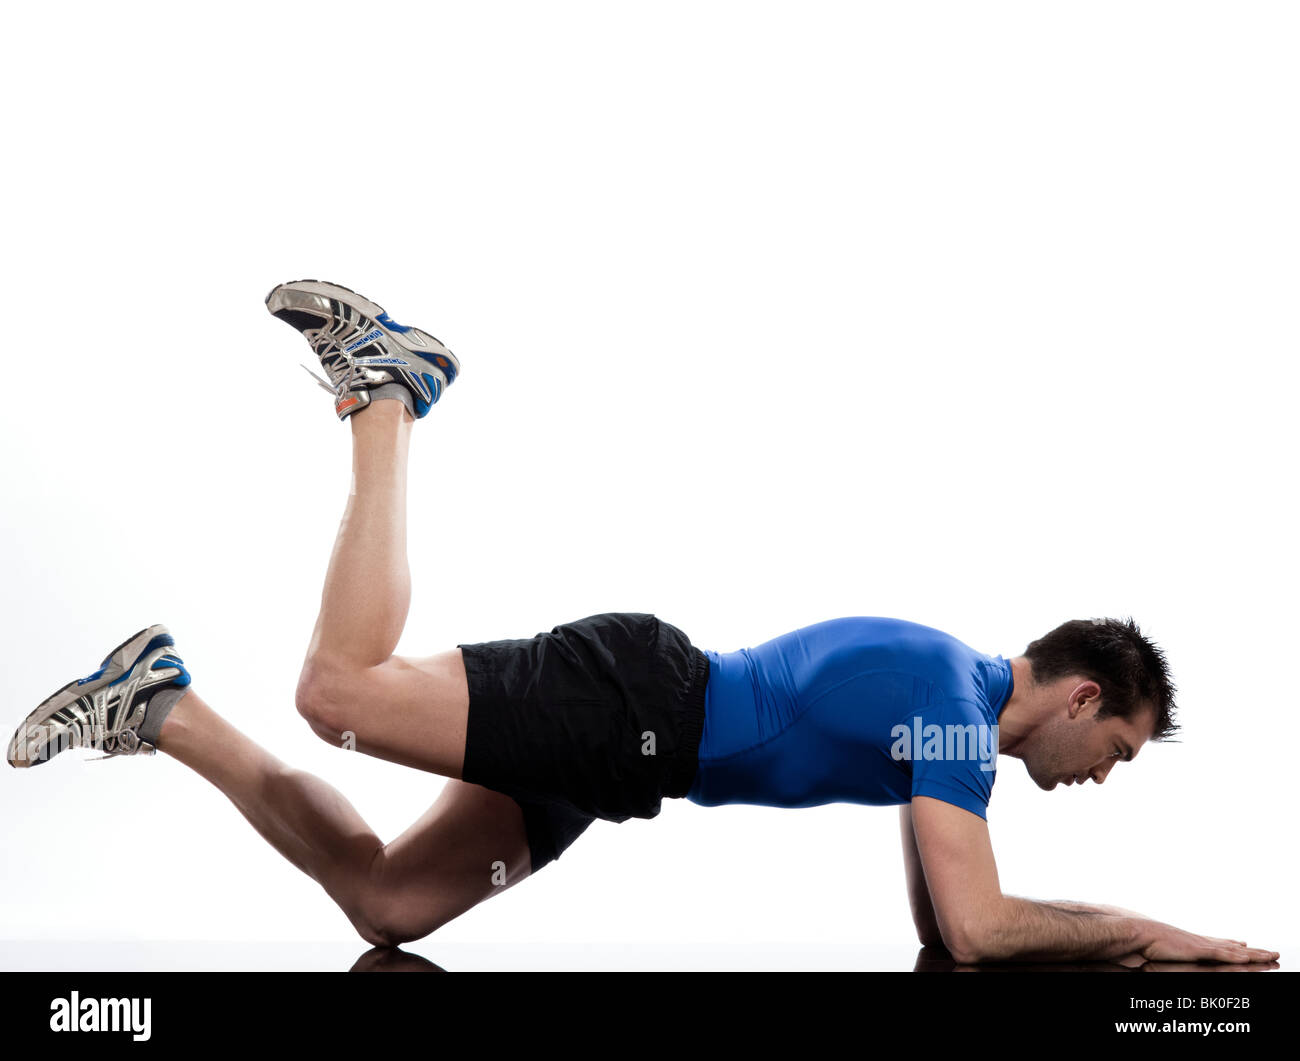 man on Abdominals workout posture on white background. Plank Bent Leg Raise - Stock Image